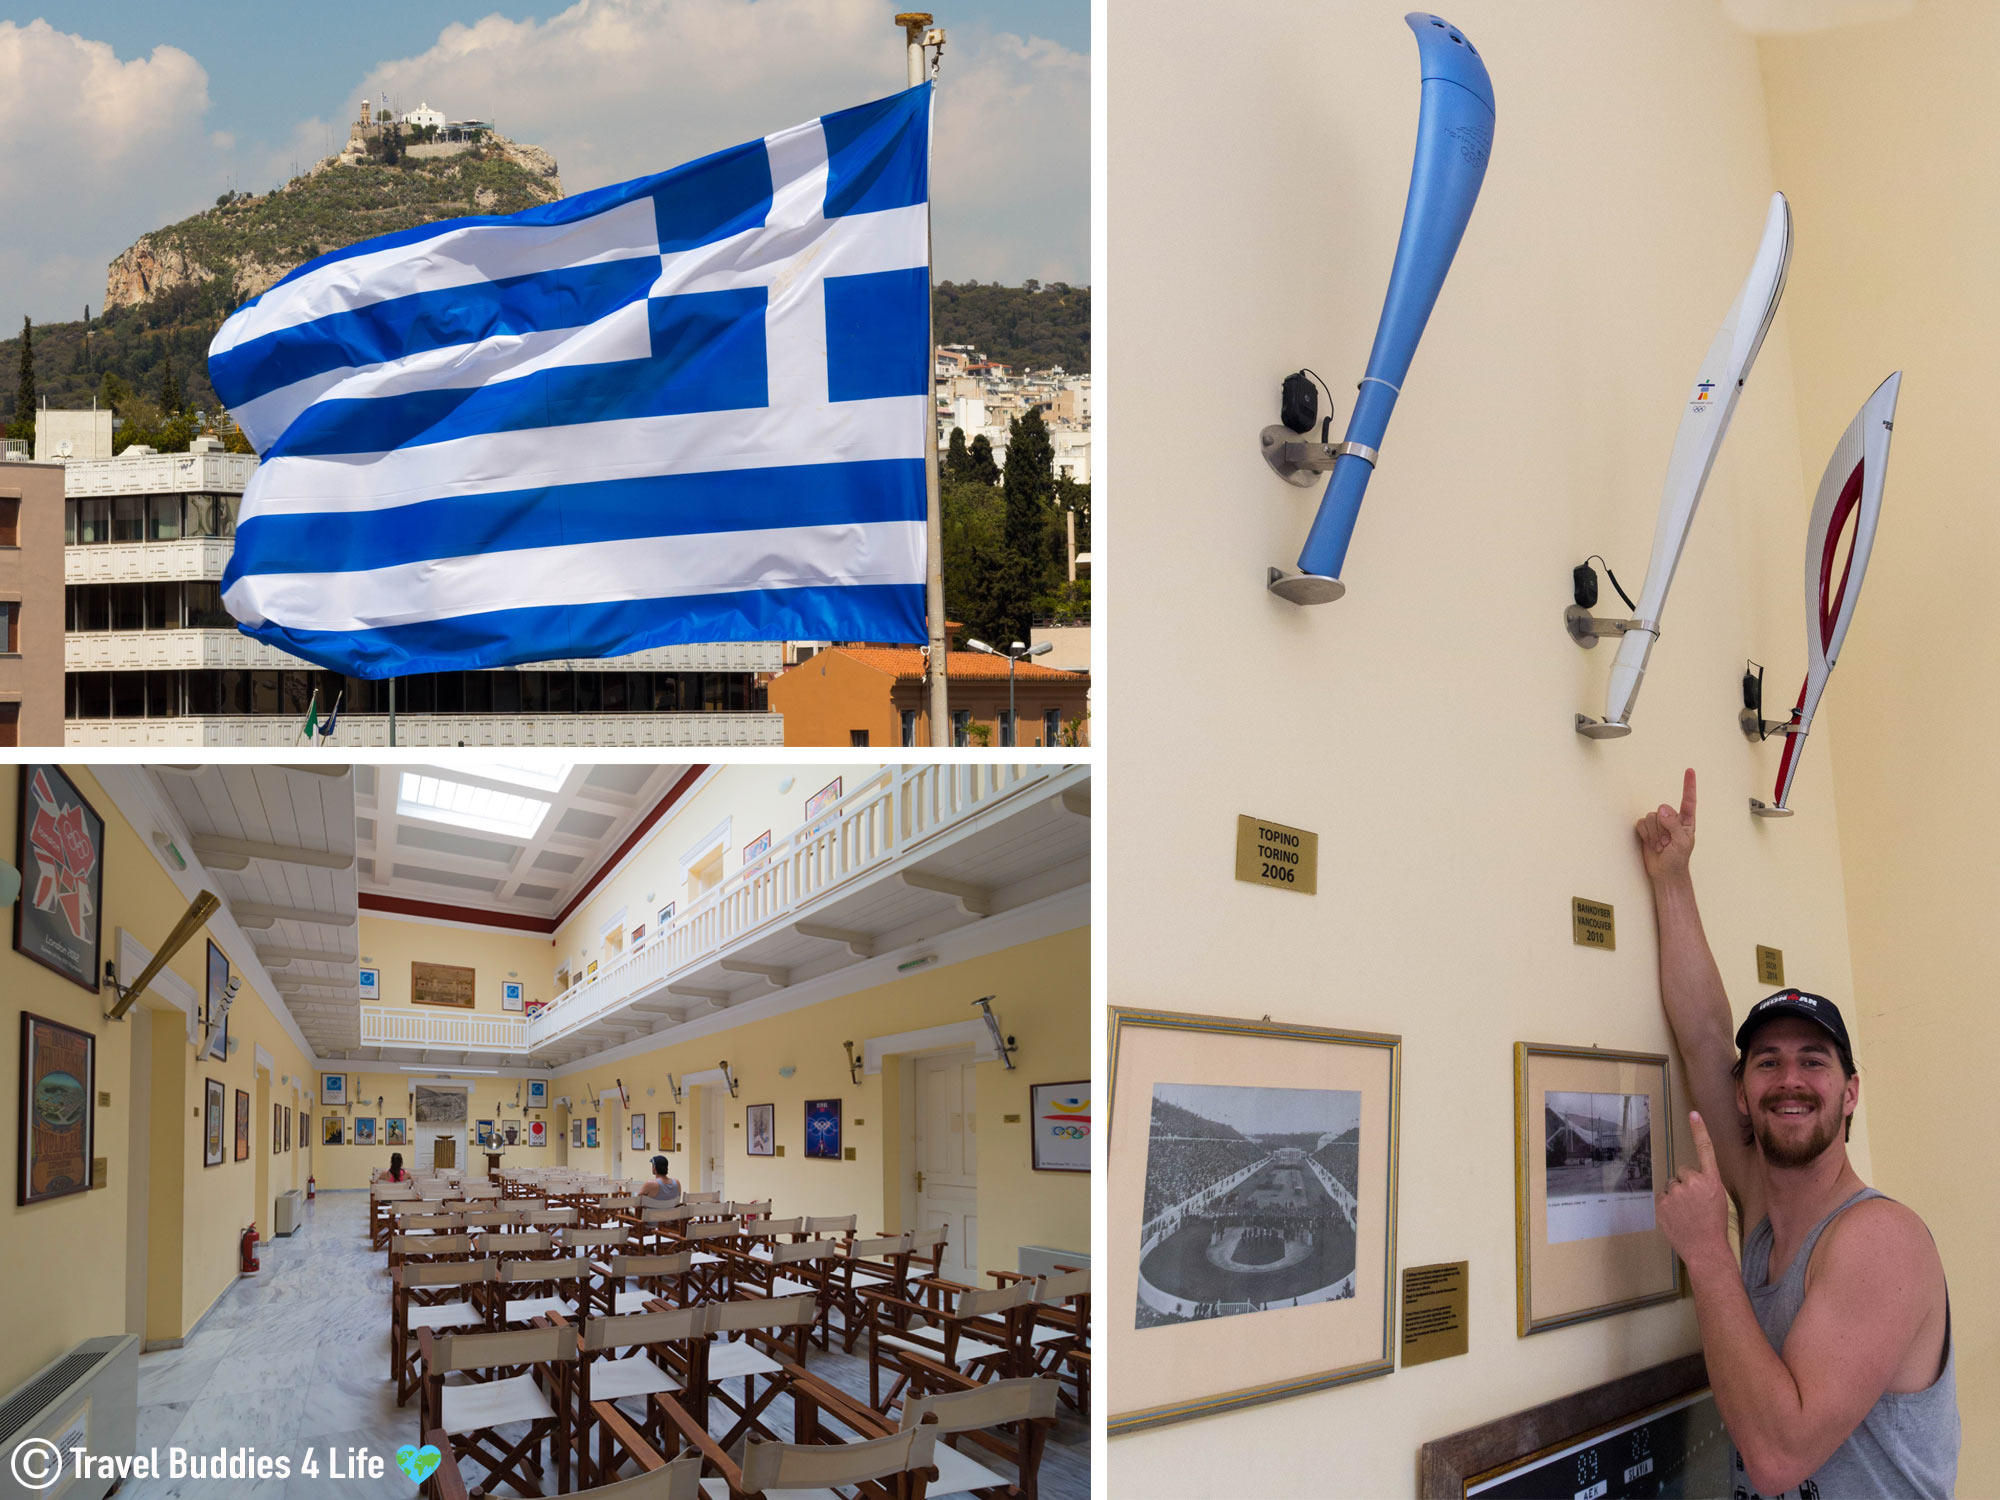 The Olympic Torch Room In The Athens Panathenaic Stadium In Greece, Europe Historic Travels